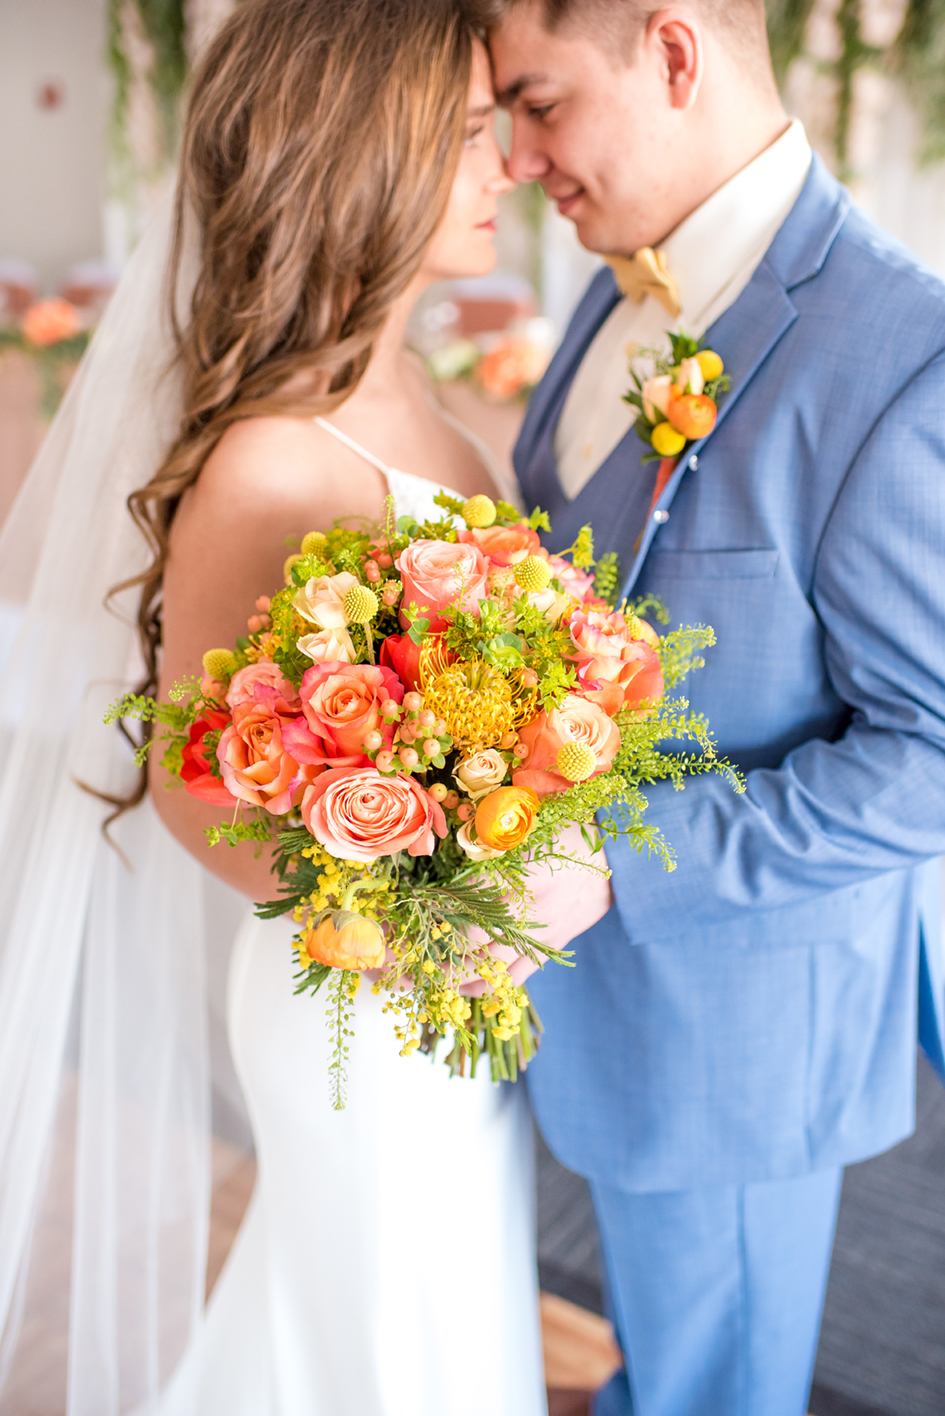 Couple shares a moment while holding a bright pink, orange and yellow bouquet at Par 4 Golf and Resort